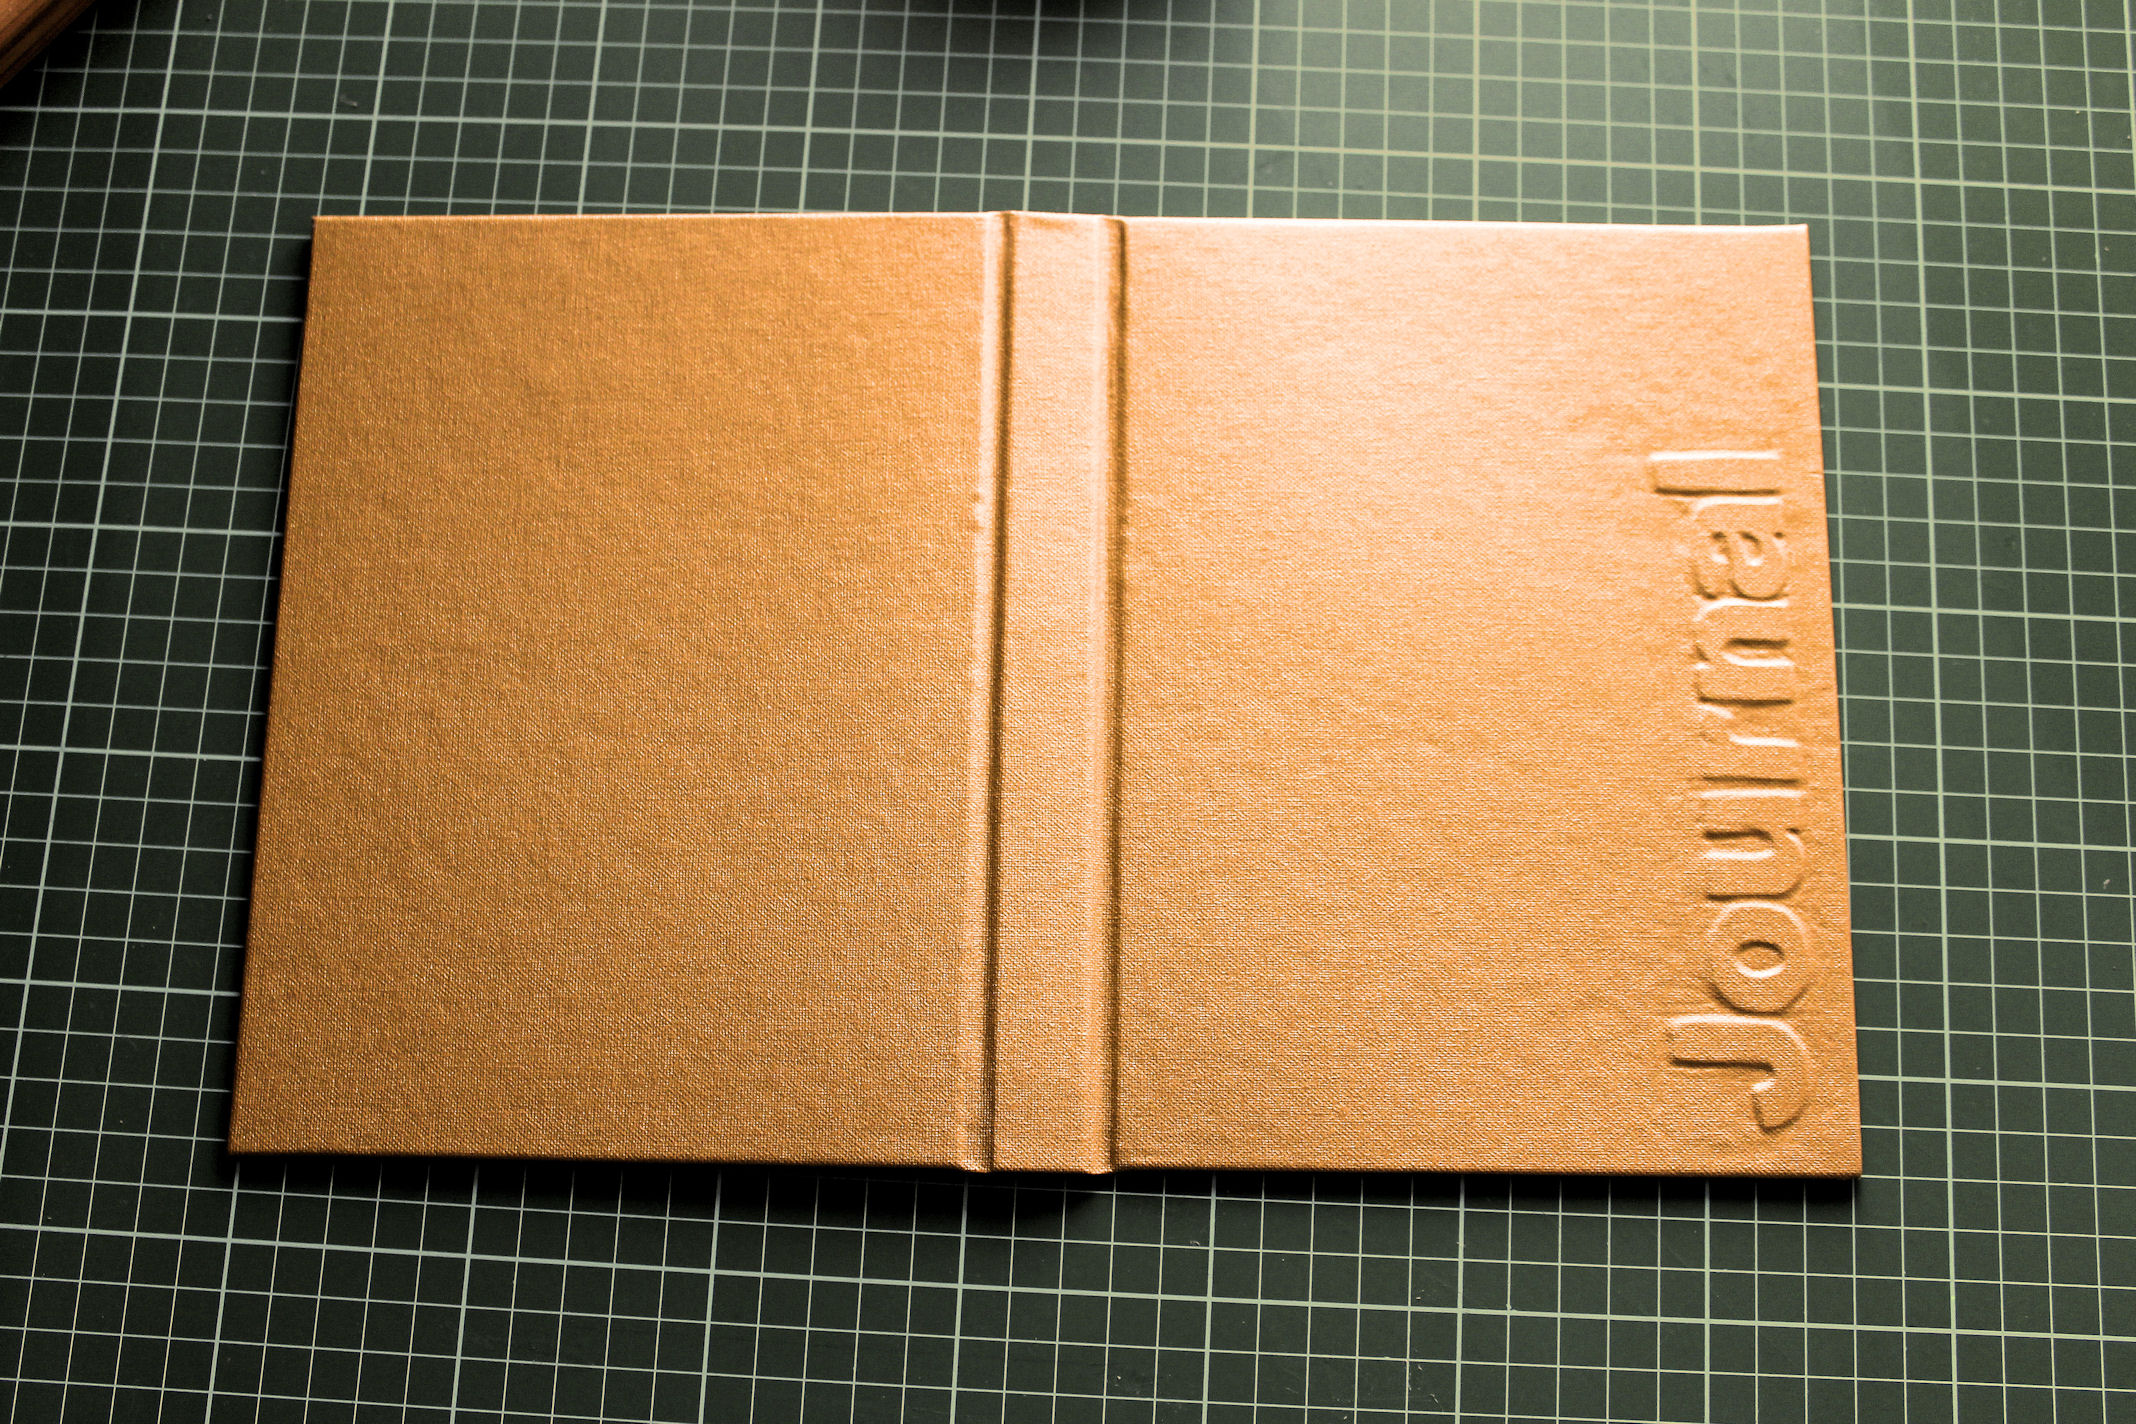 How To Make A Book Cover Cloth ~ A journal cover with raised text doing stuff